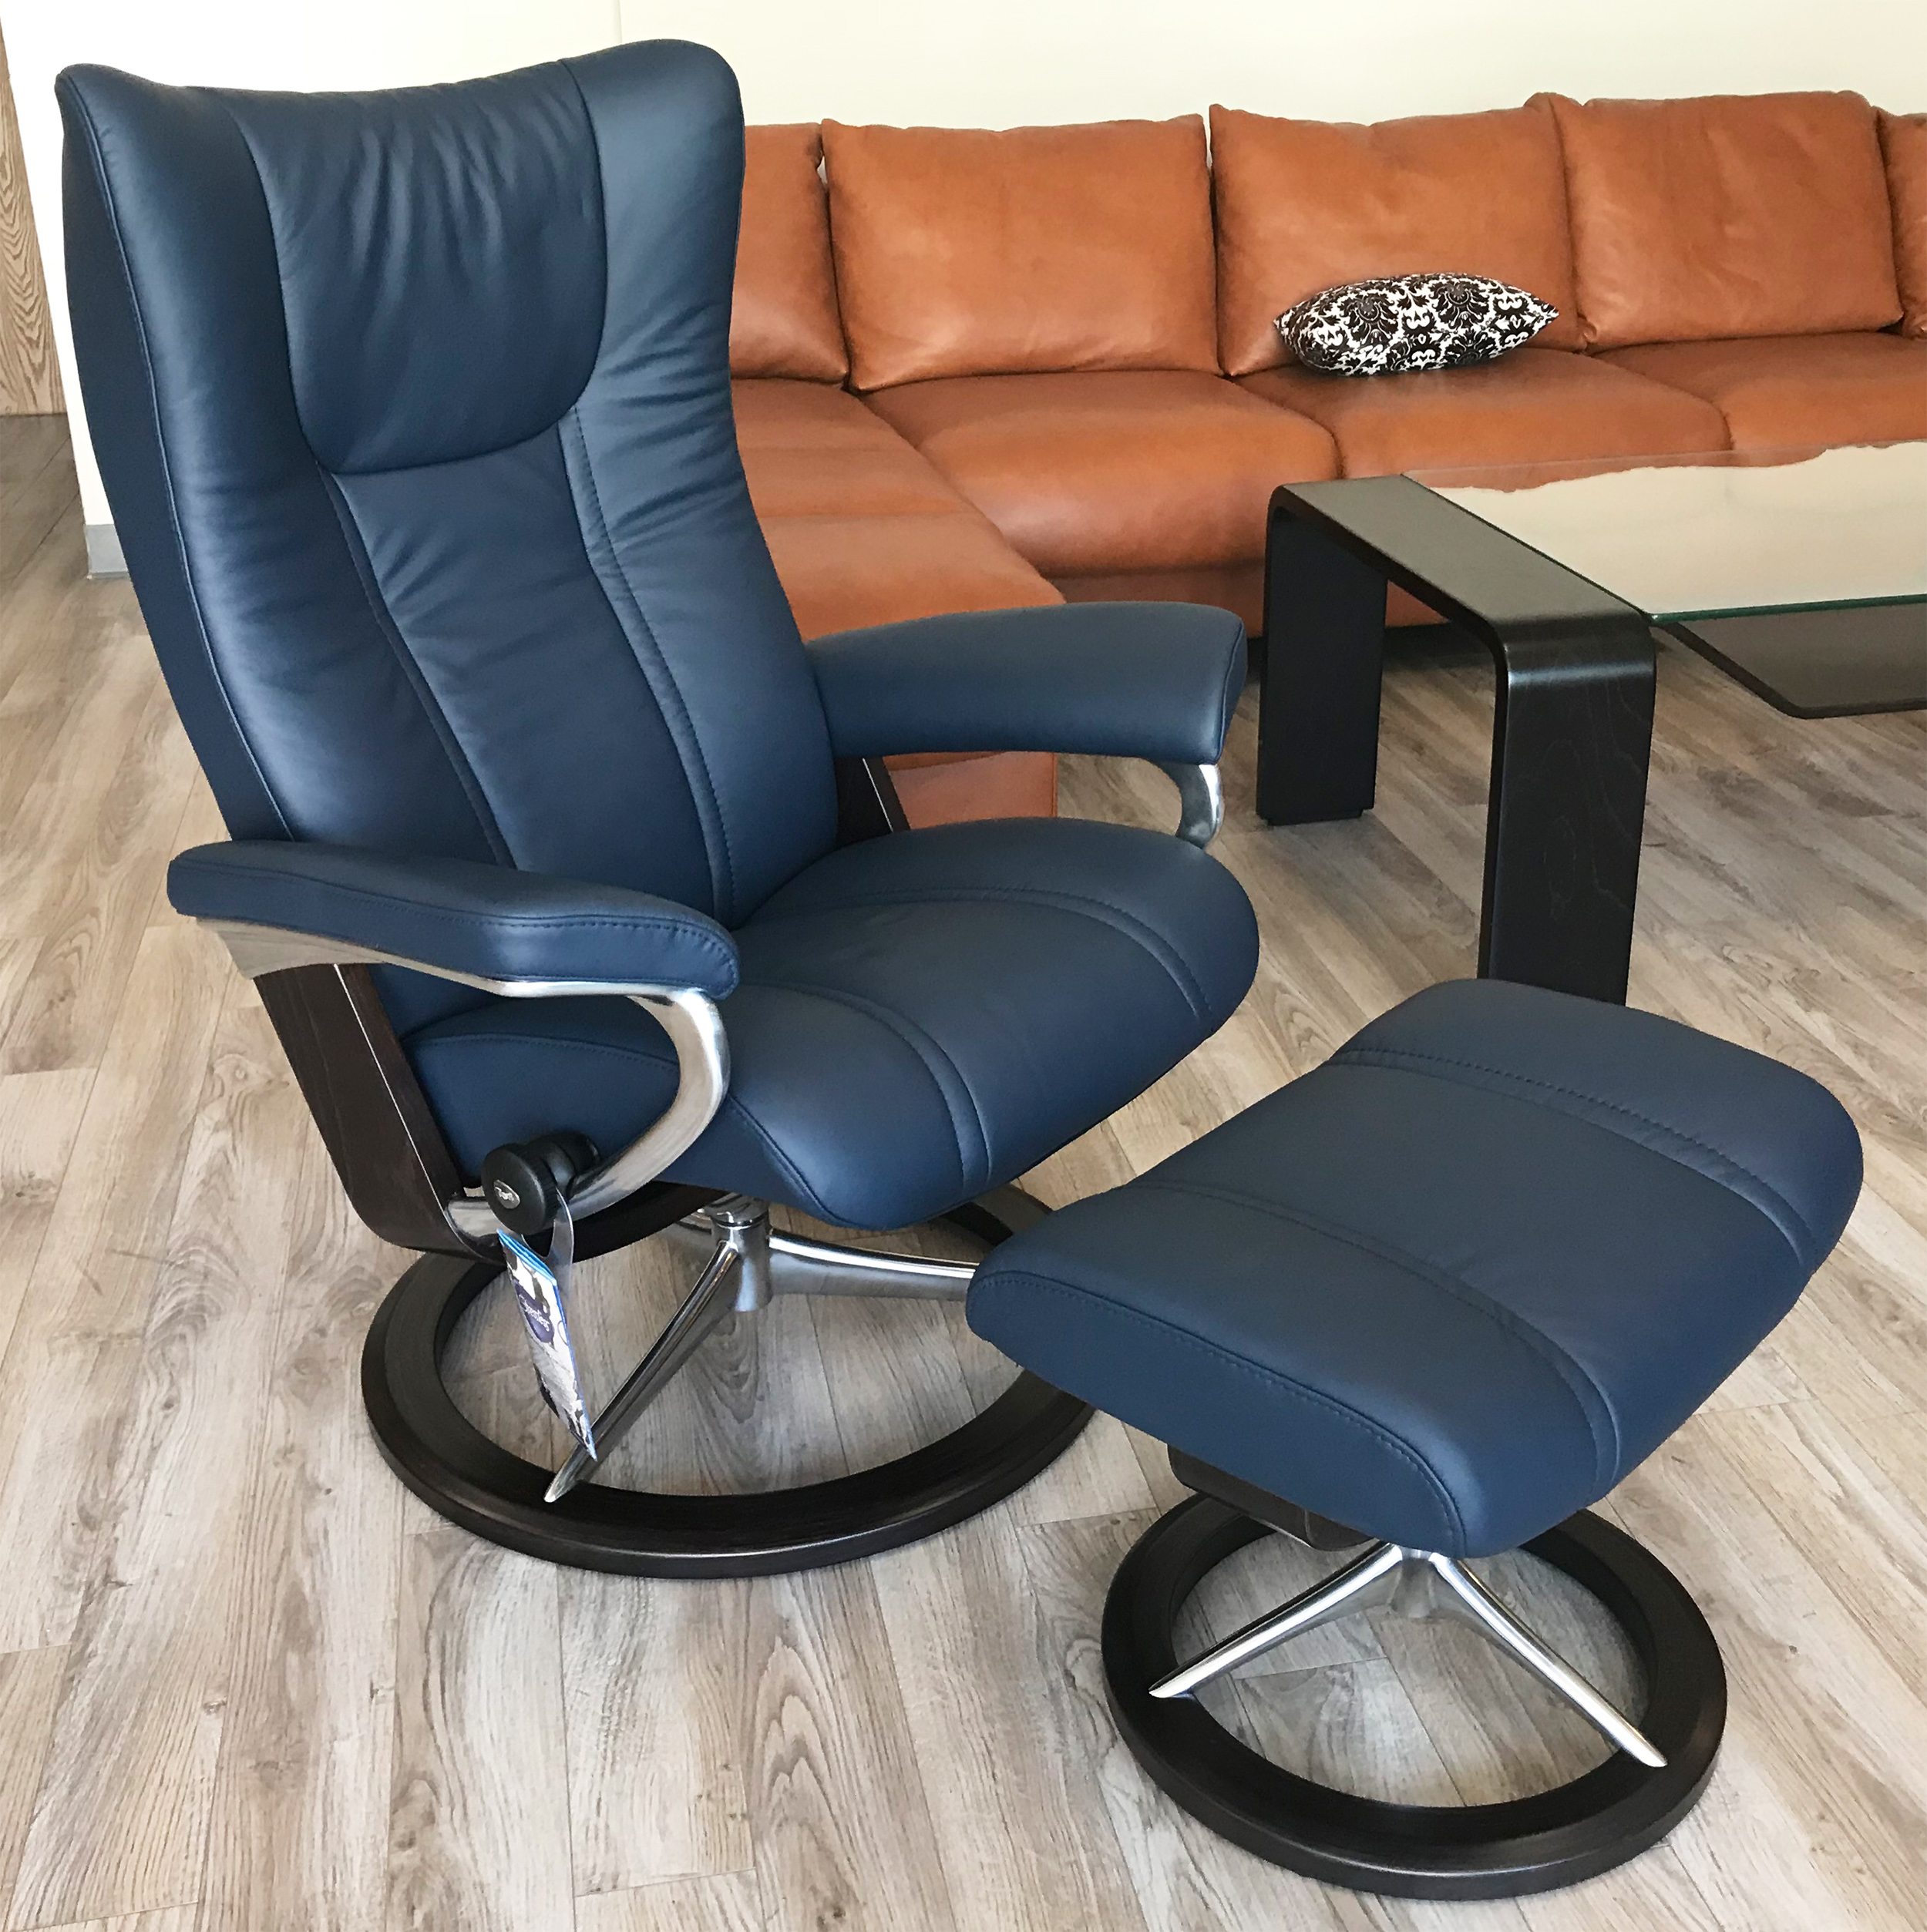 Sensational Stressless Wing Recliner Chair And Ottoman In Paloma Black Leather By Ekornes Caraccident5 Cool Chair Designs And Ideas Caraccident5Info